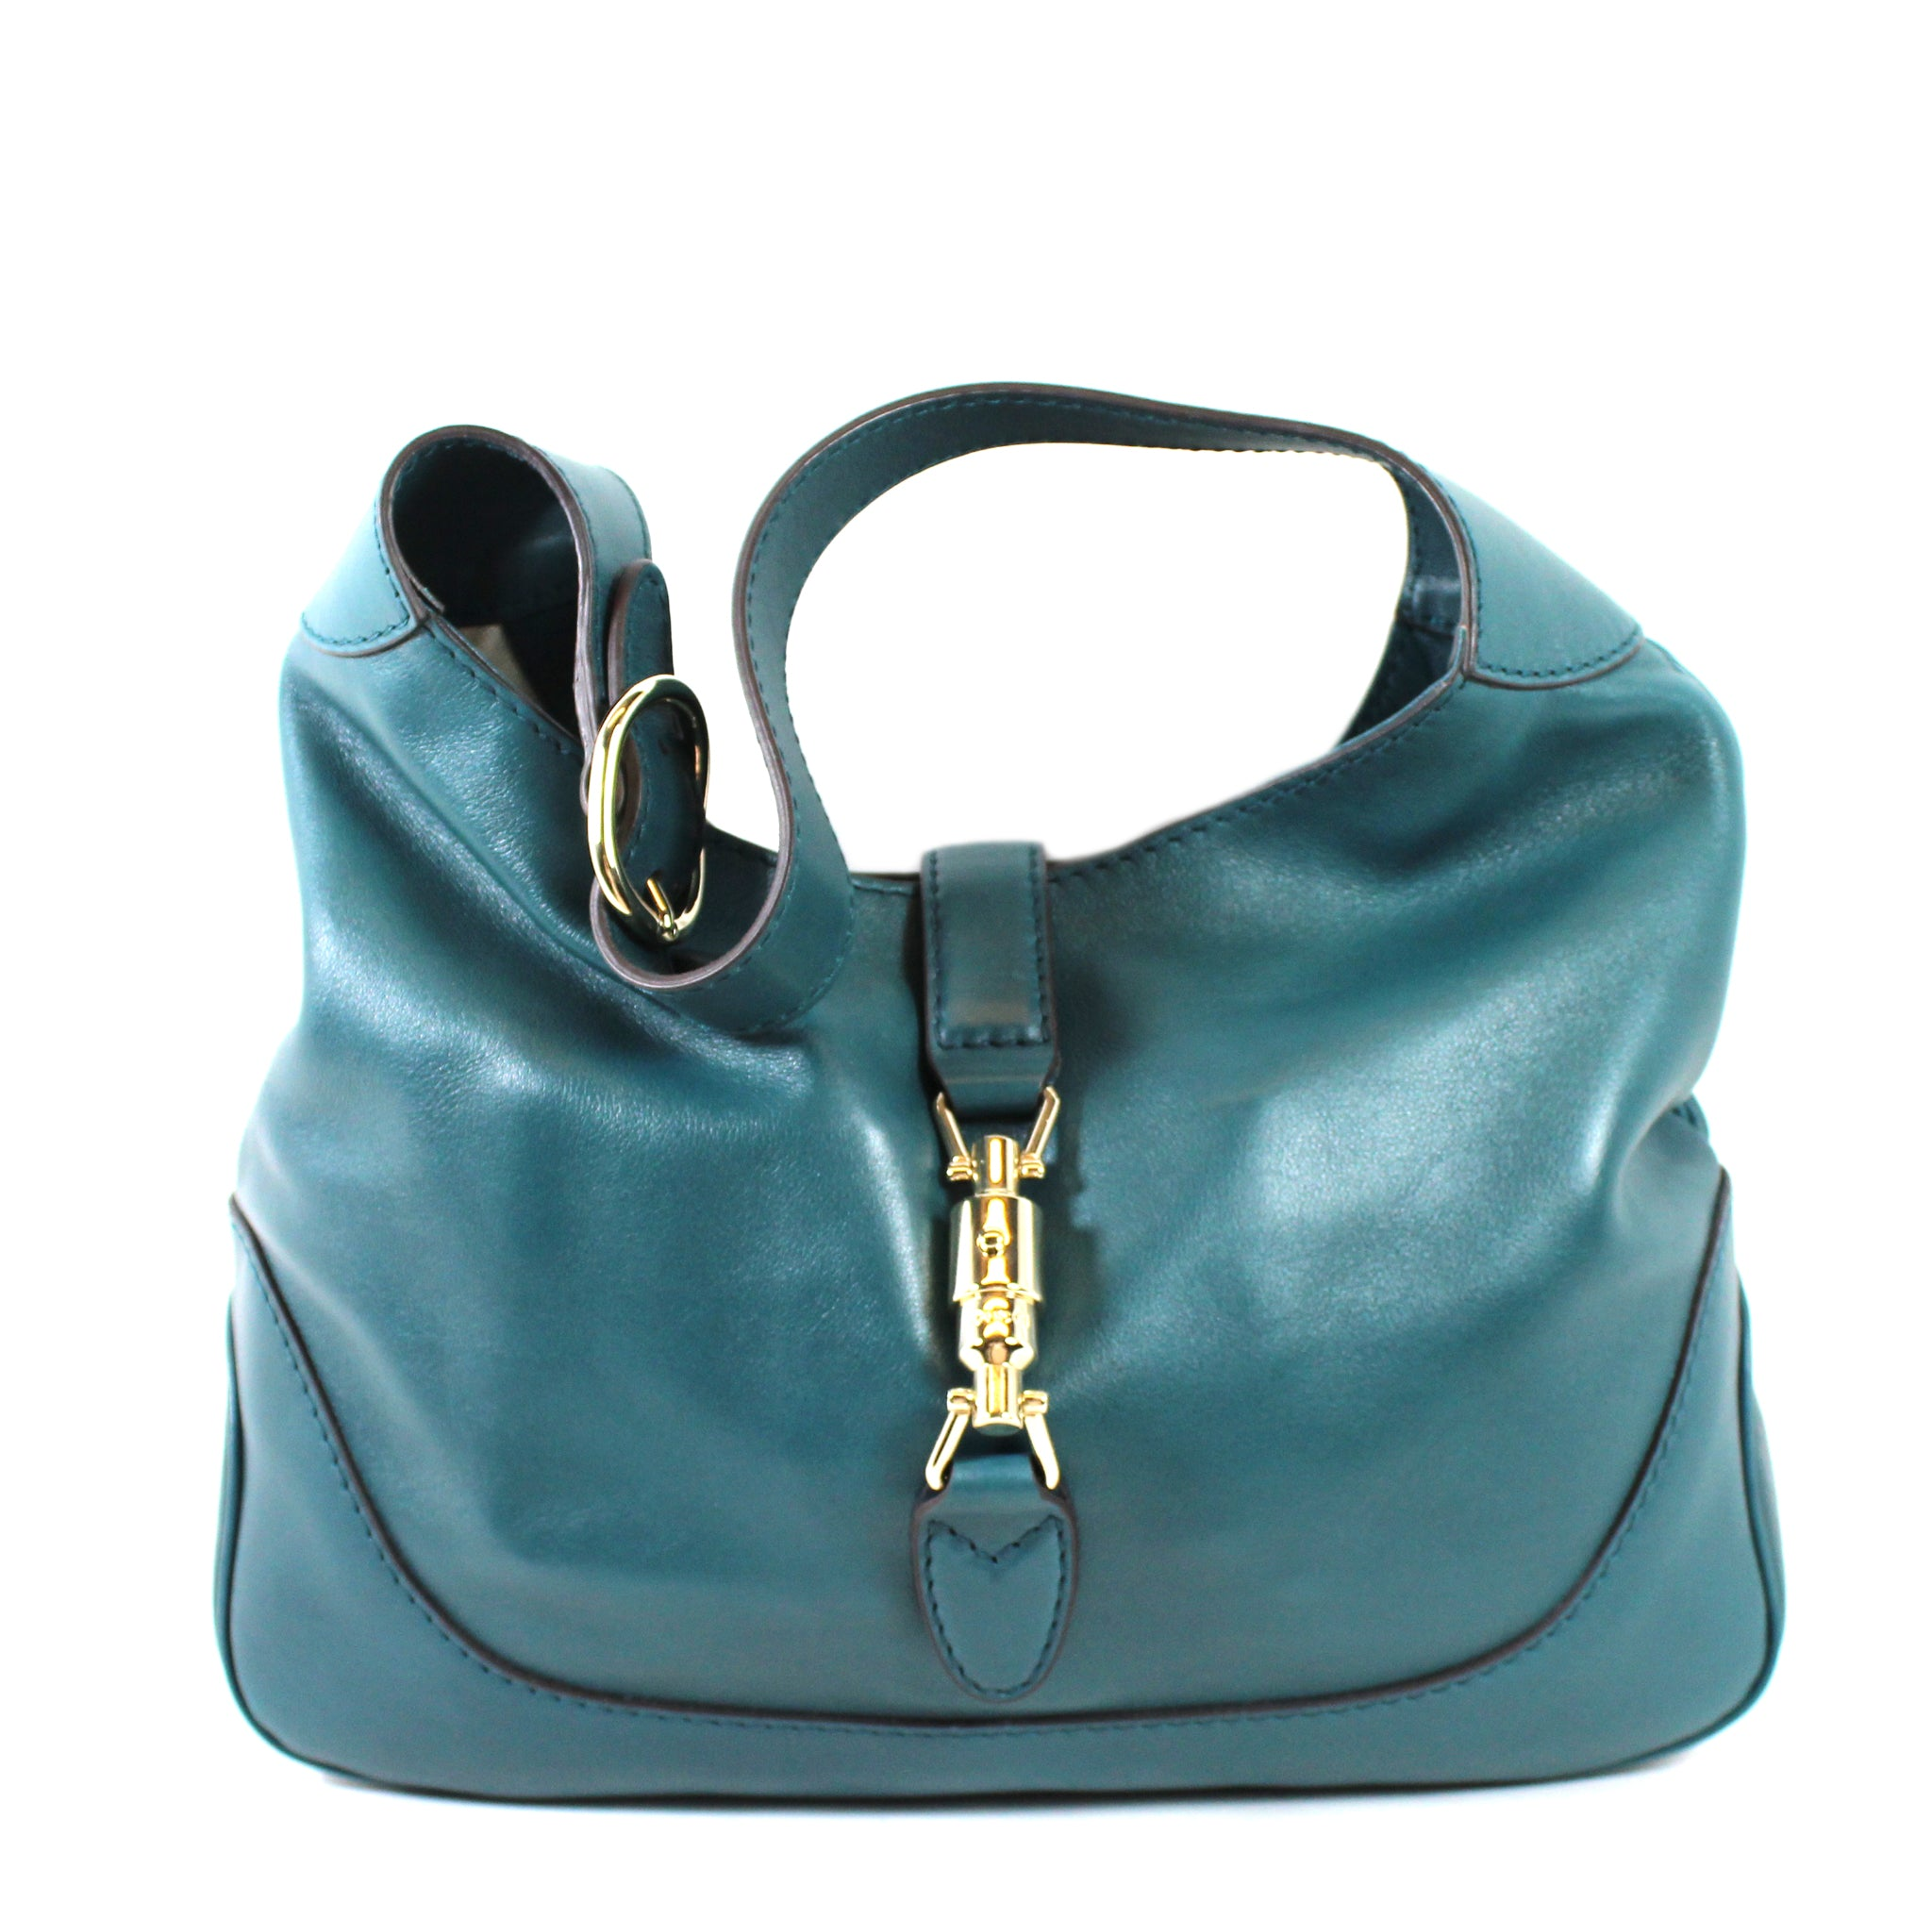 Gucci 'Jackie' Teal Leather Medium Hobo Bag